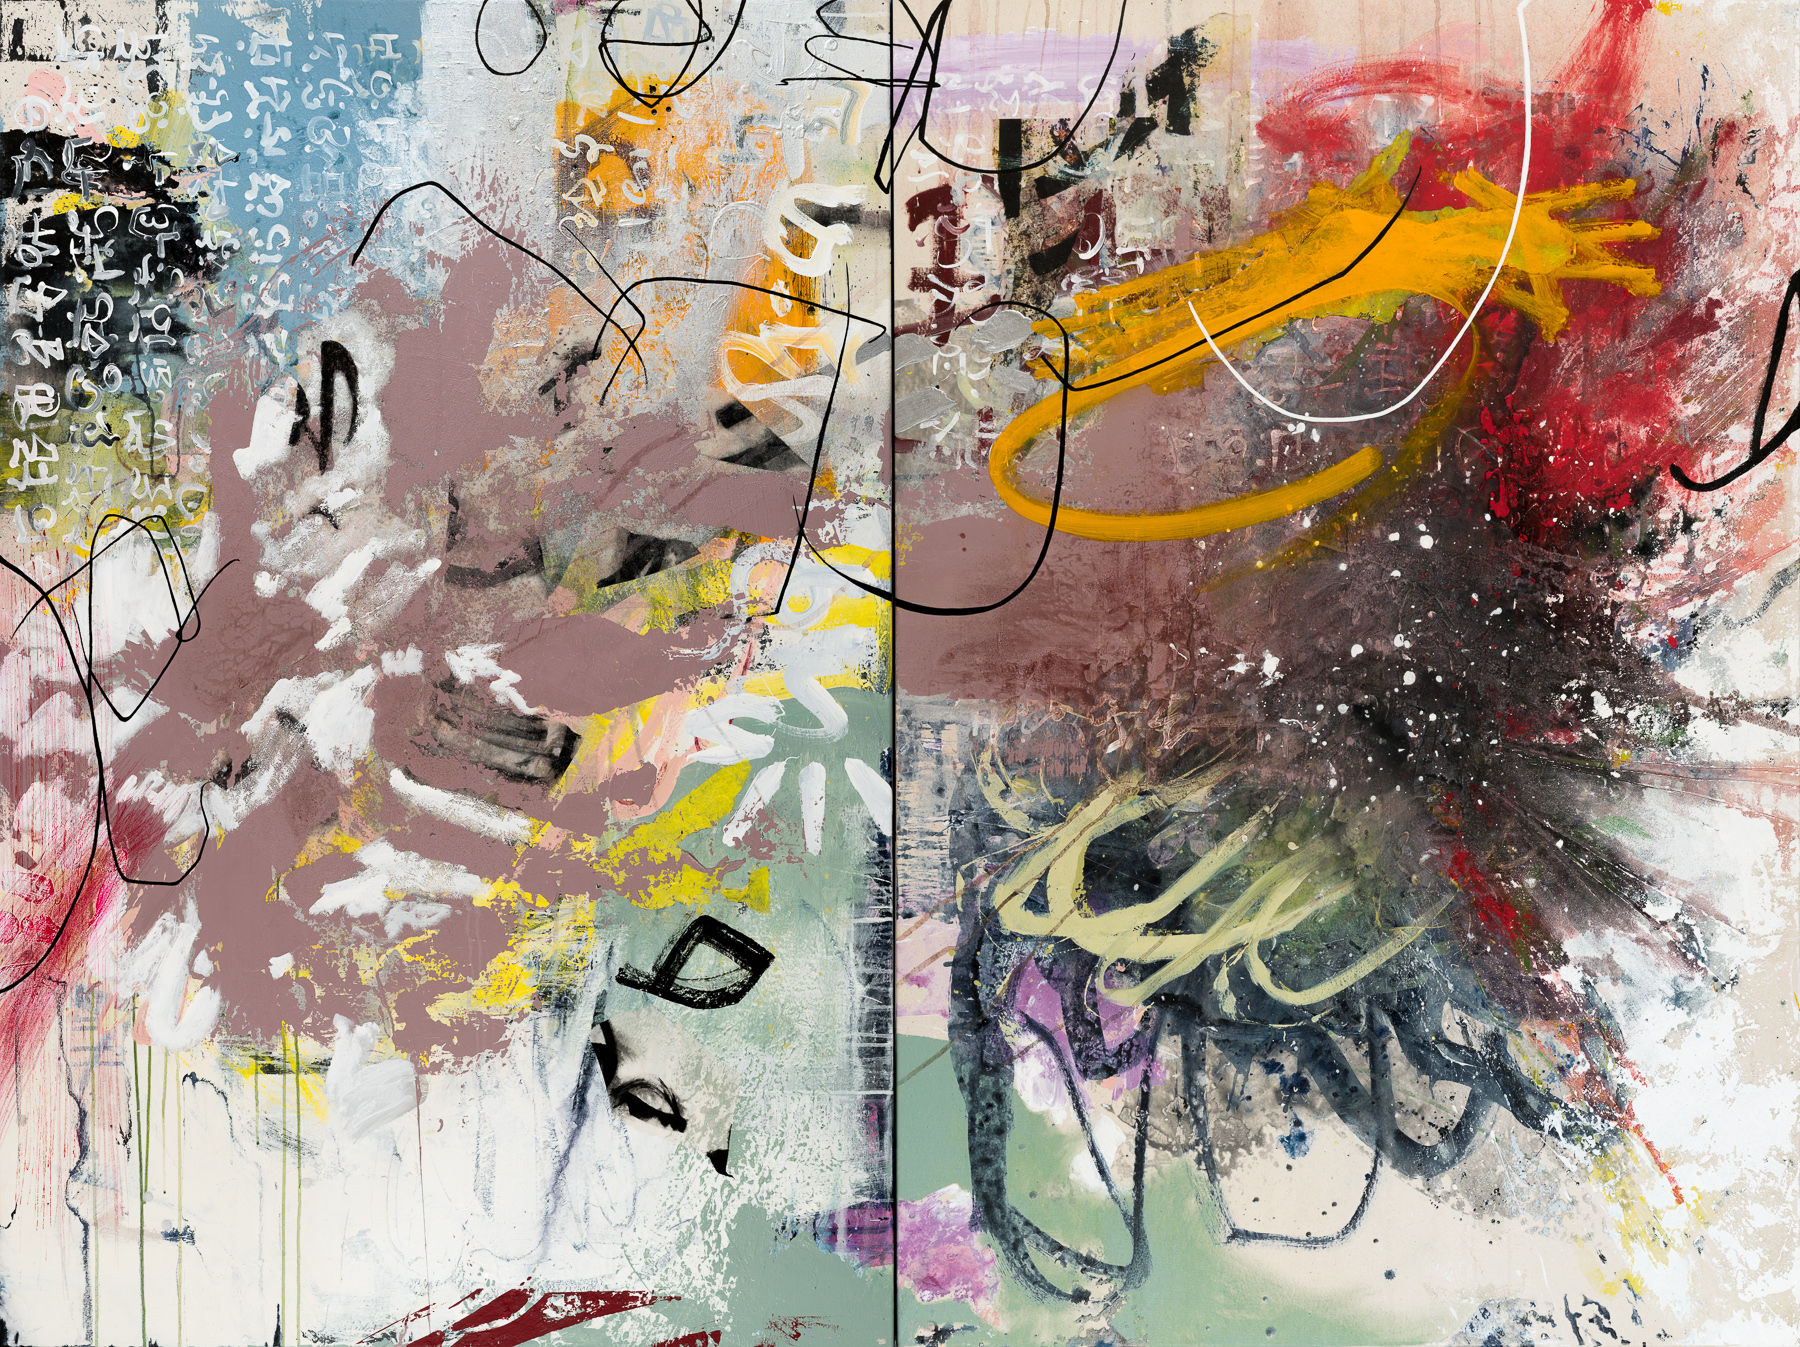 oversized extra large contemporary modern abstract painting diptych urban industrial loft graffiti street edge expressionism Laura Letchinger Los Angeles artist STATE